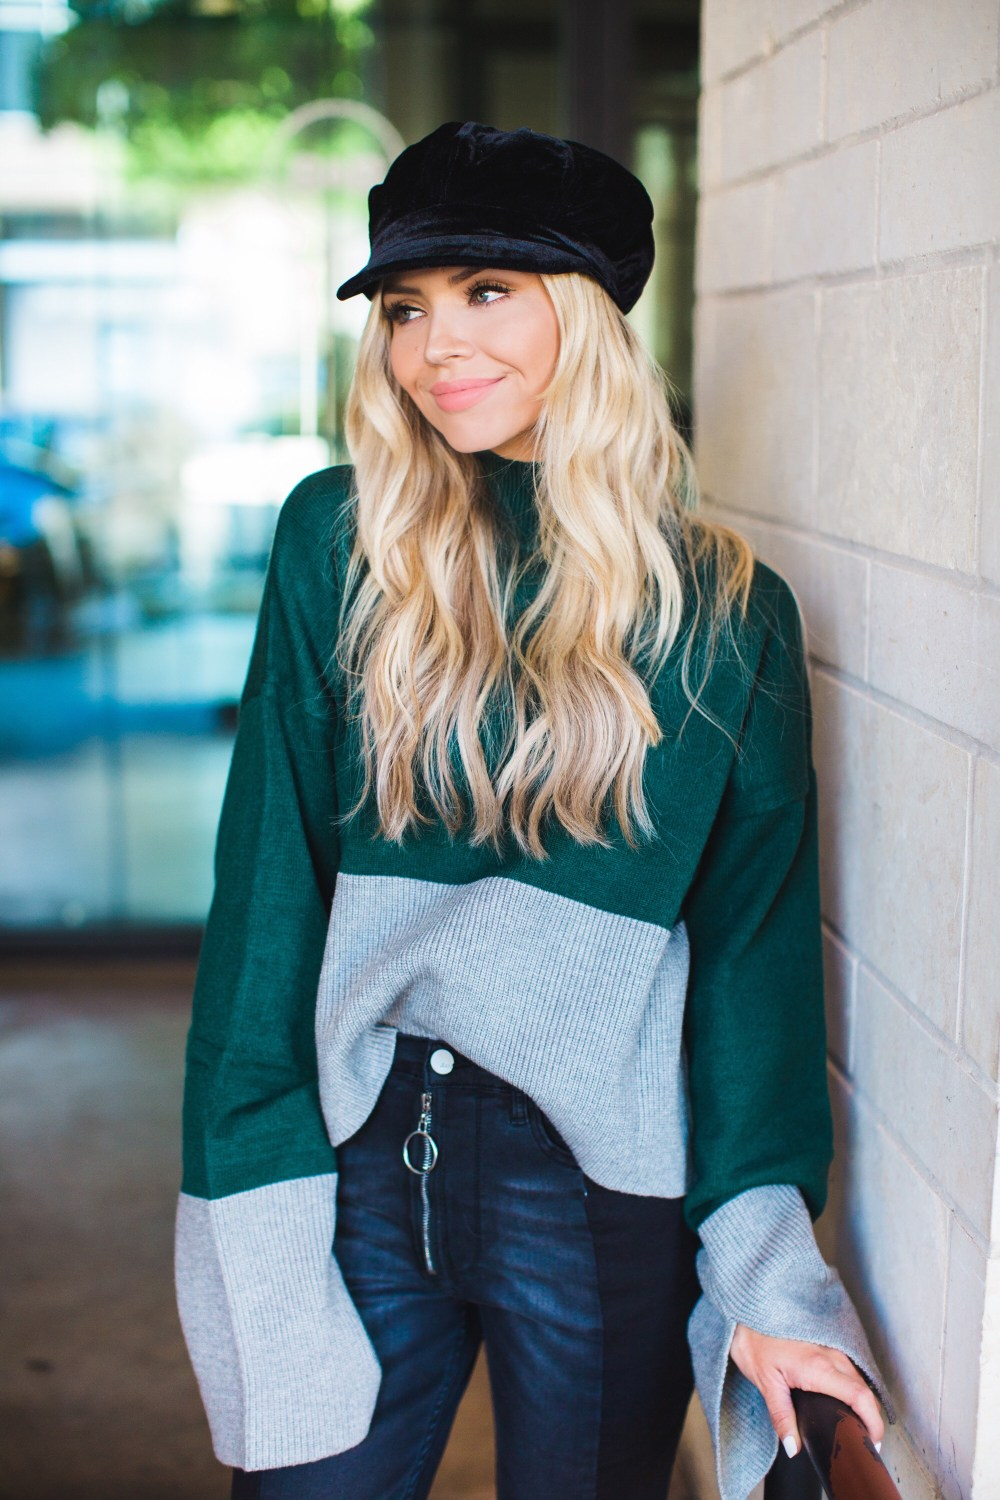 What a fun fall look! This sweater is super comfy and I am in love with the velvet hat!